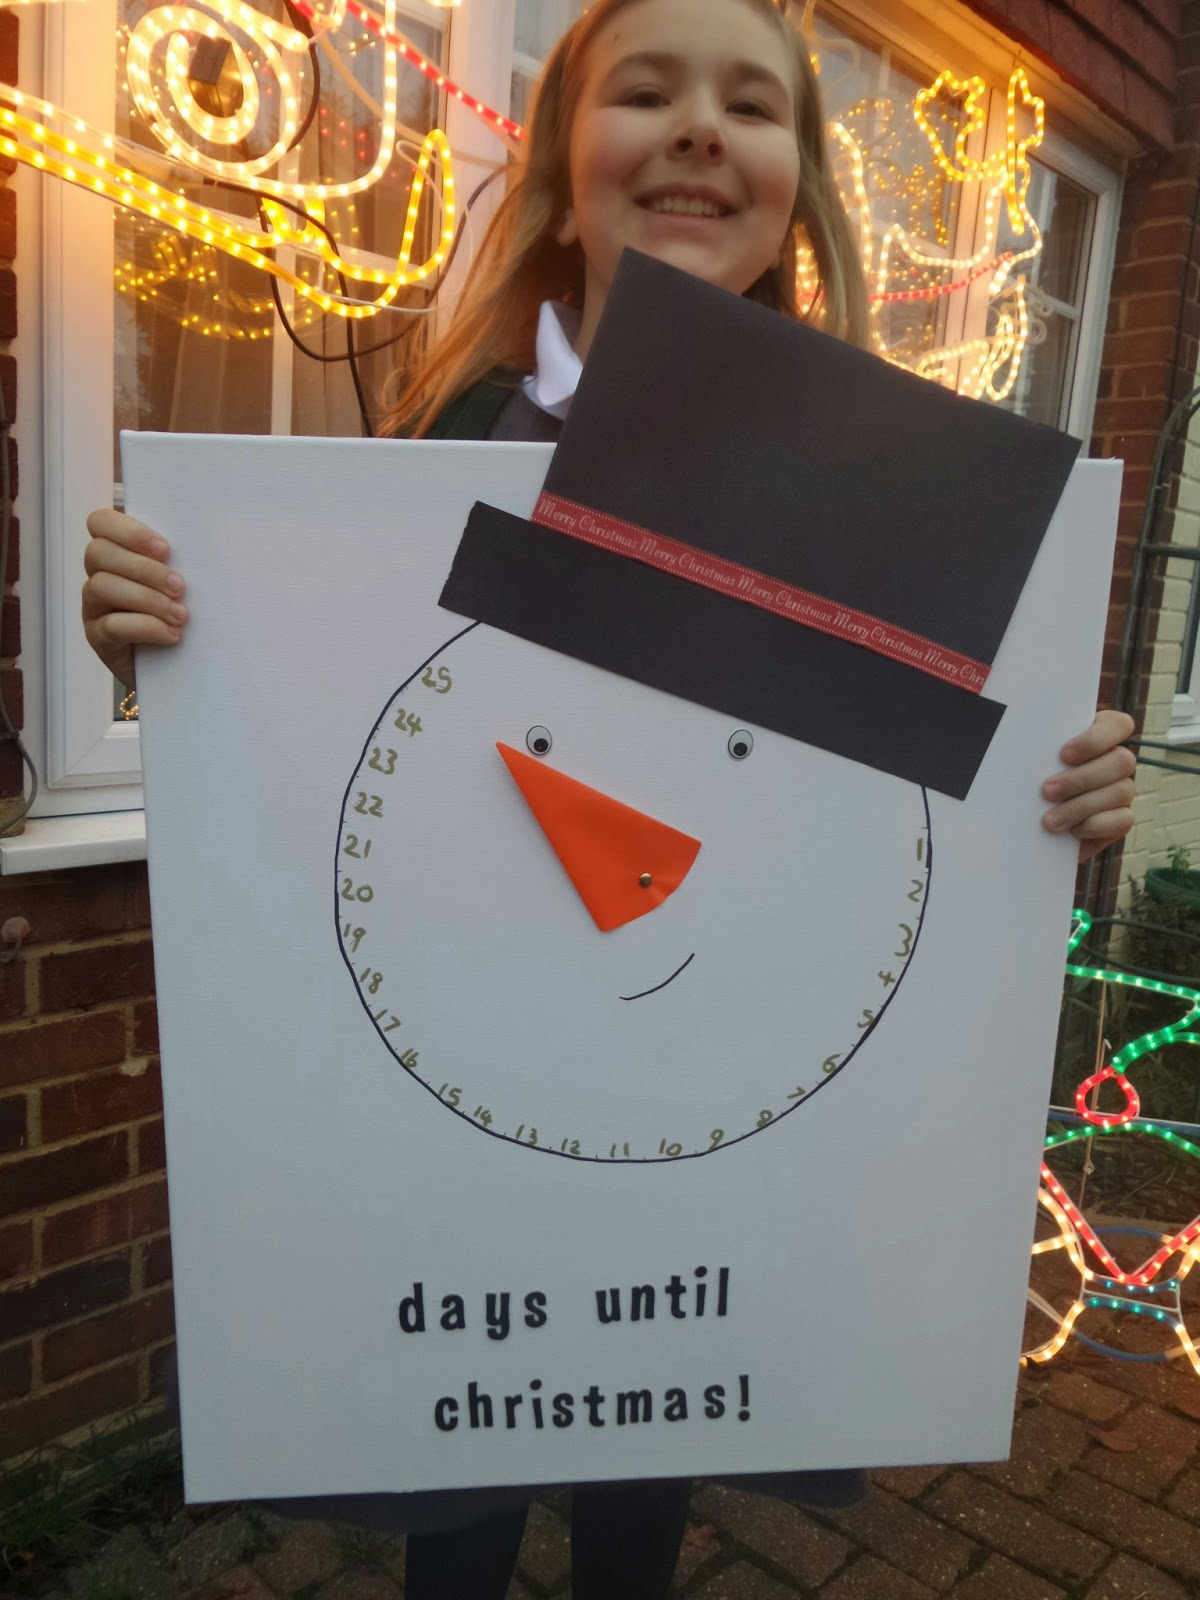 Top Ender and her Snowman Christmas Countdown